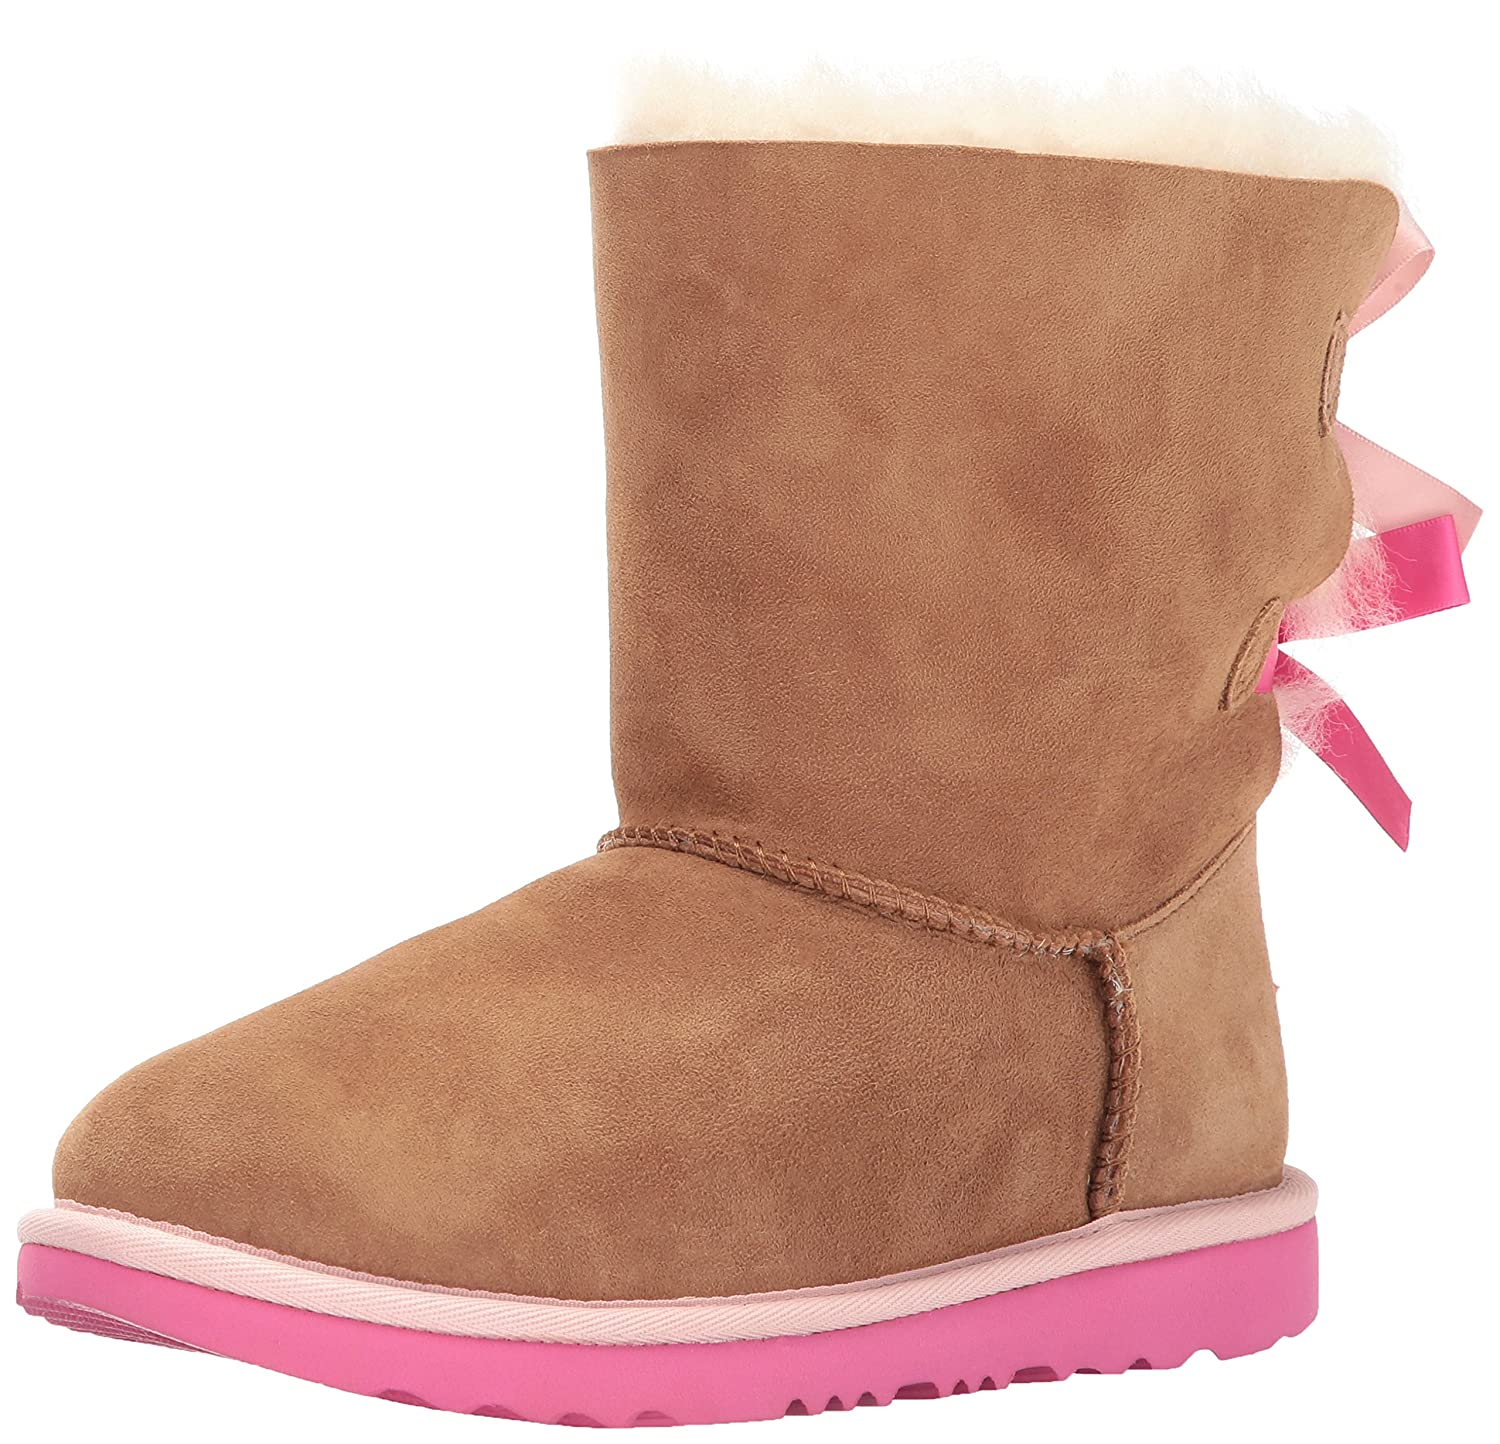 16ab0a13838 UGG Kids K Bailey Bow II Fashion Boot